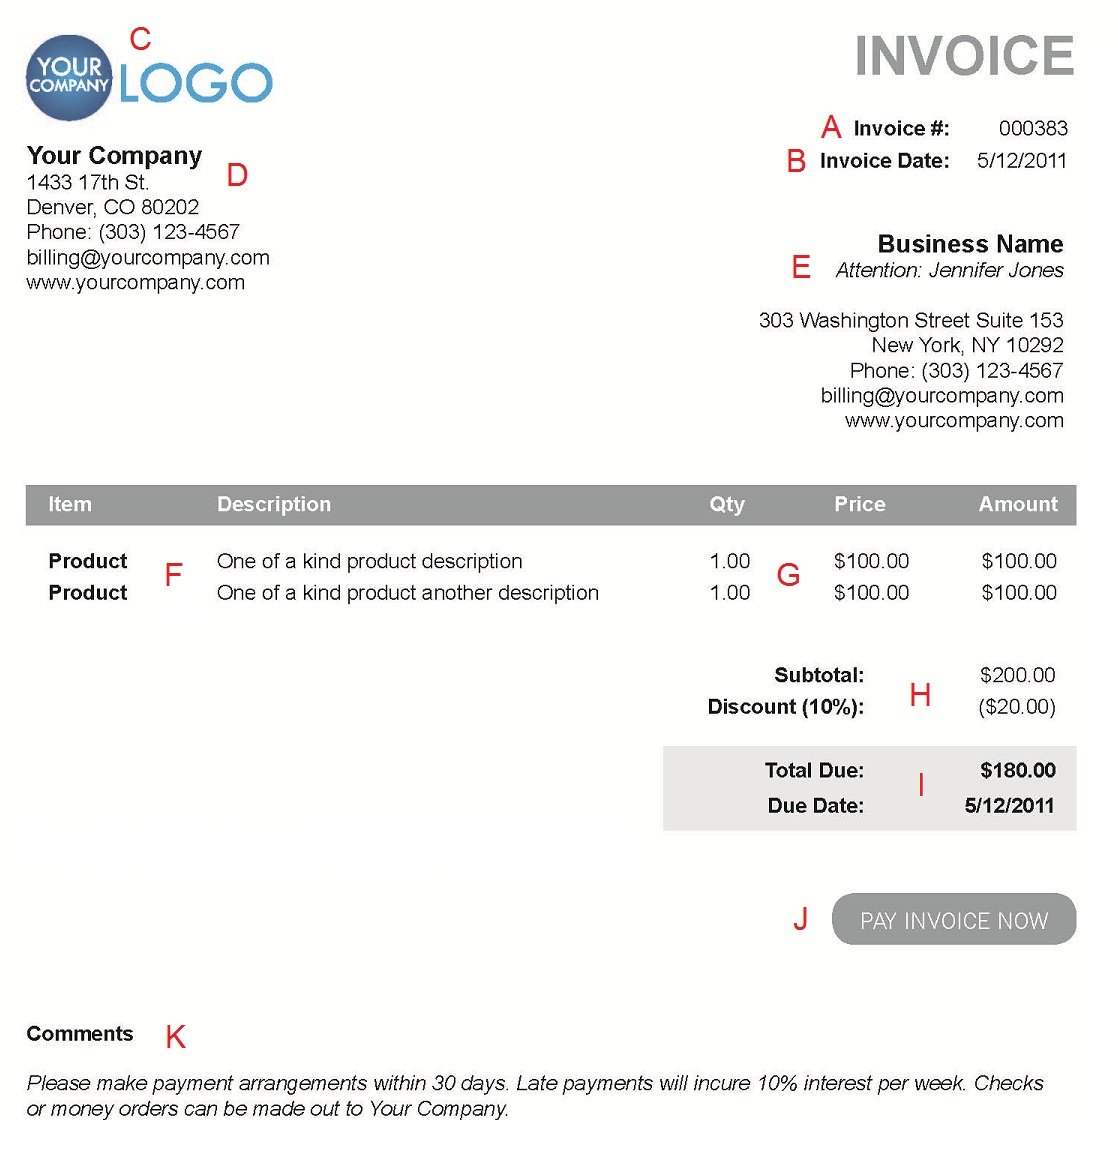 Aaaaeroincus  Nice The  Different Sections Of An Electronic Payment Invoice With Licious A  With Cute Free Invoice Software Uk Also Purchase Order Invoice Template In Addition Professional Invoice Templates And An Invoice Or A Invoice As Well As Msrp And Invoice Price Additionally Blank Invoice Template Printable From Paysimplecom With Aaaaeroincus  Licious The  Different Sections Of An Electronic Payment Invoice With Cute A  And Nice Free Invoice Software Uk Also Purchase Order Invoice Template In Addition Professional Invoice Templates From Paysimplecom